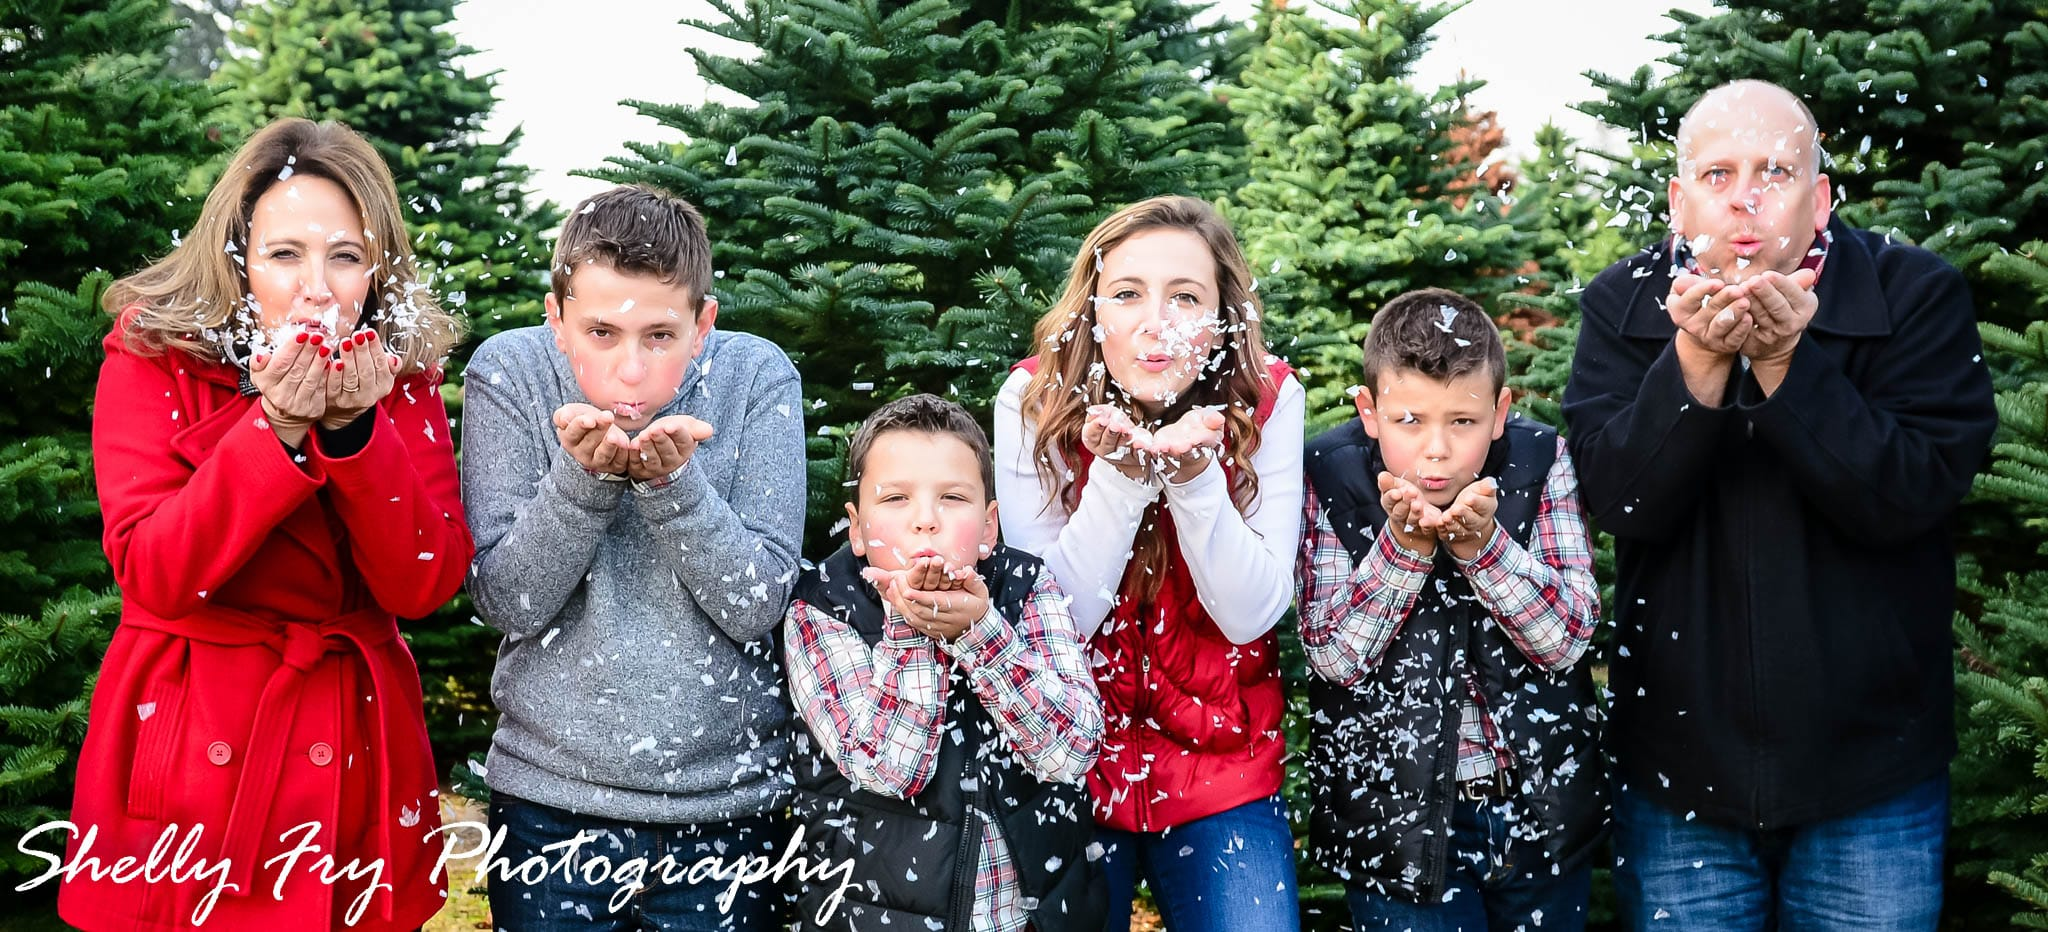 A Christmas Spirit.Ermshar Family Christmas Spirit Shelly Fry Photography